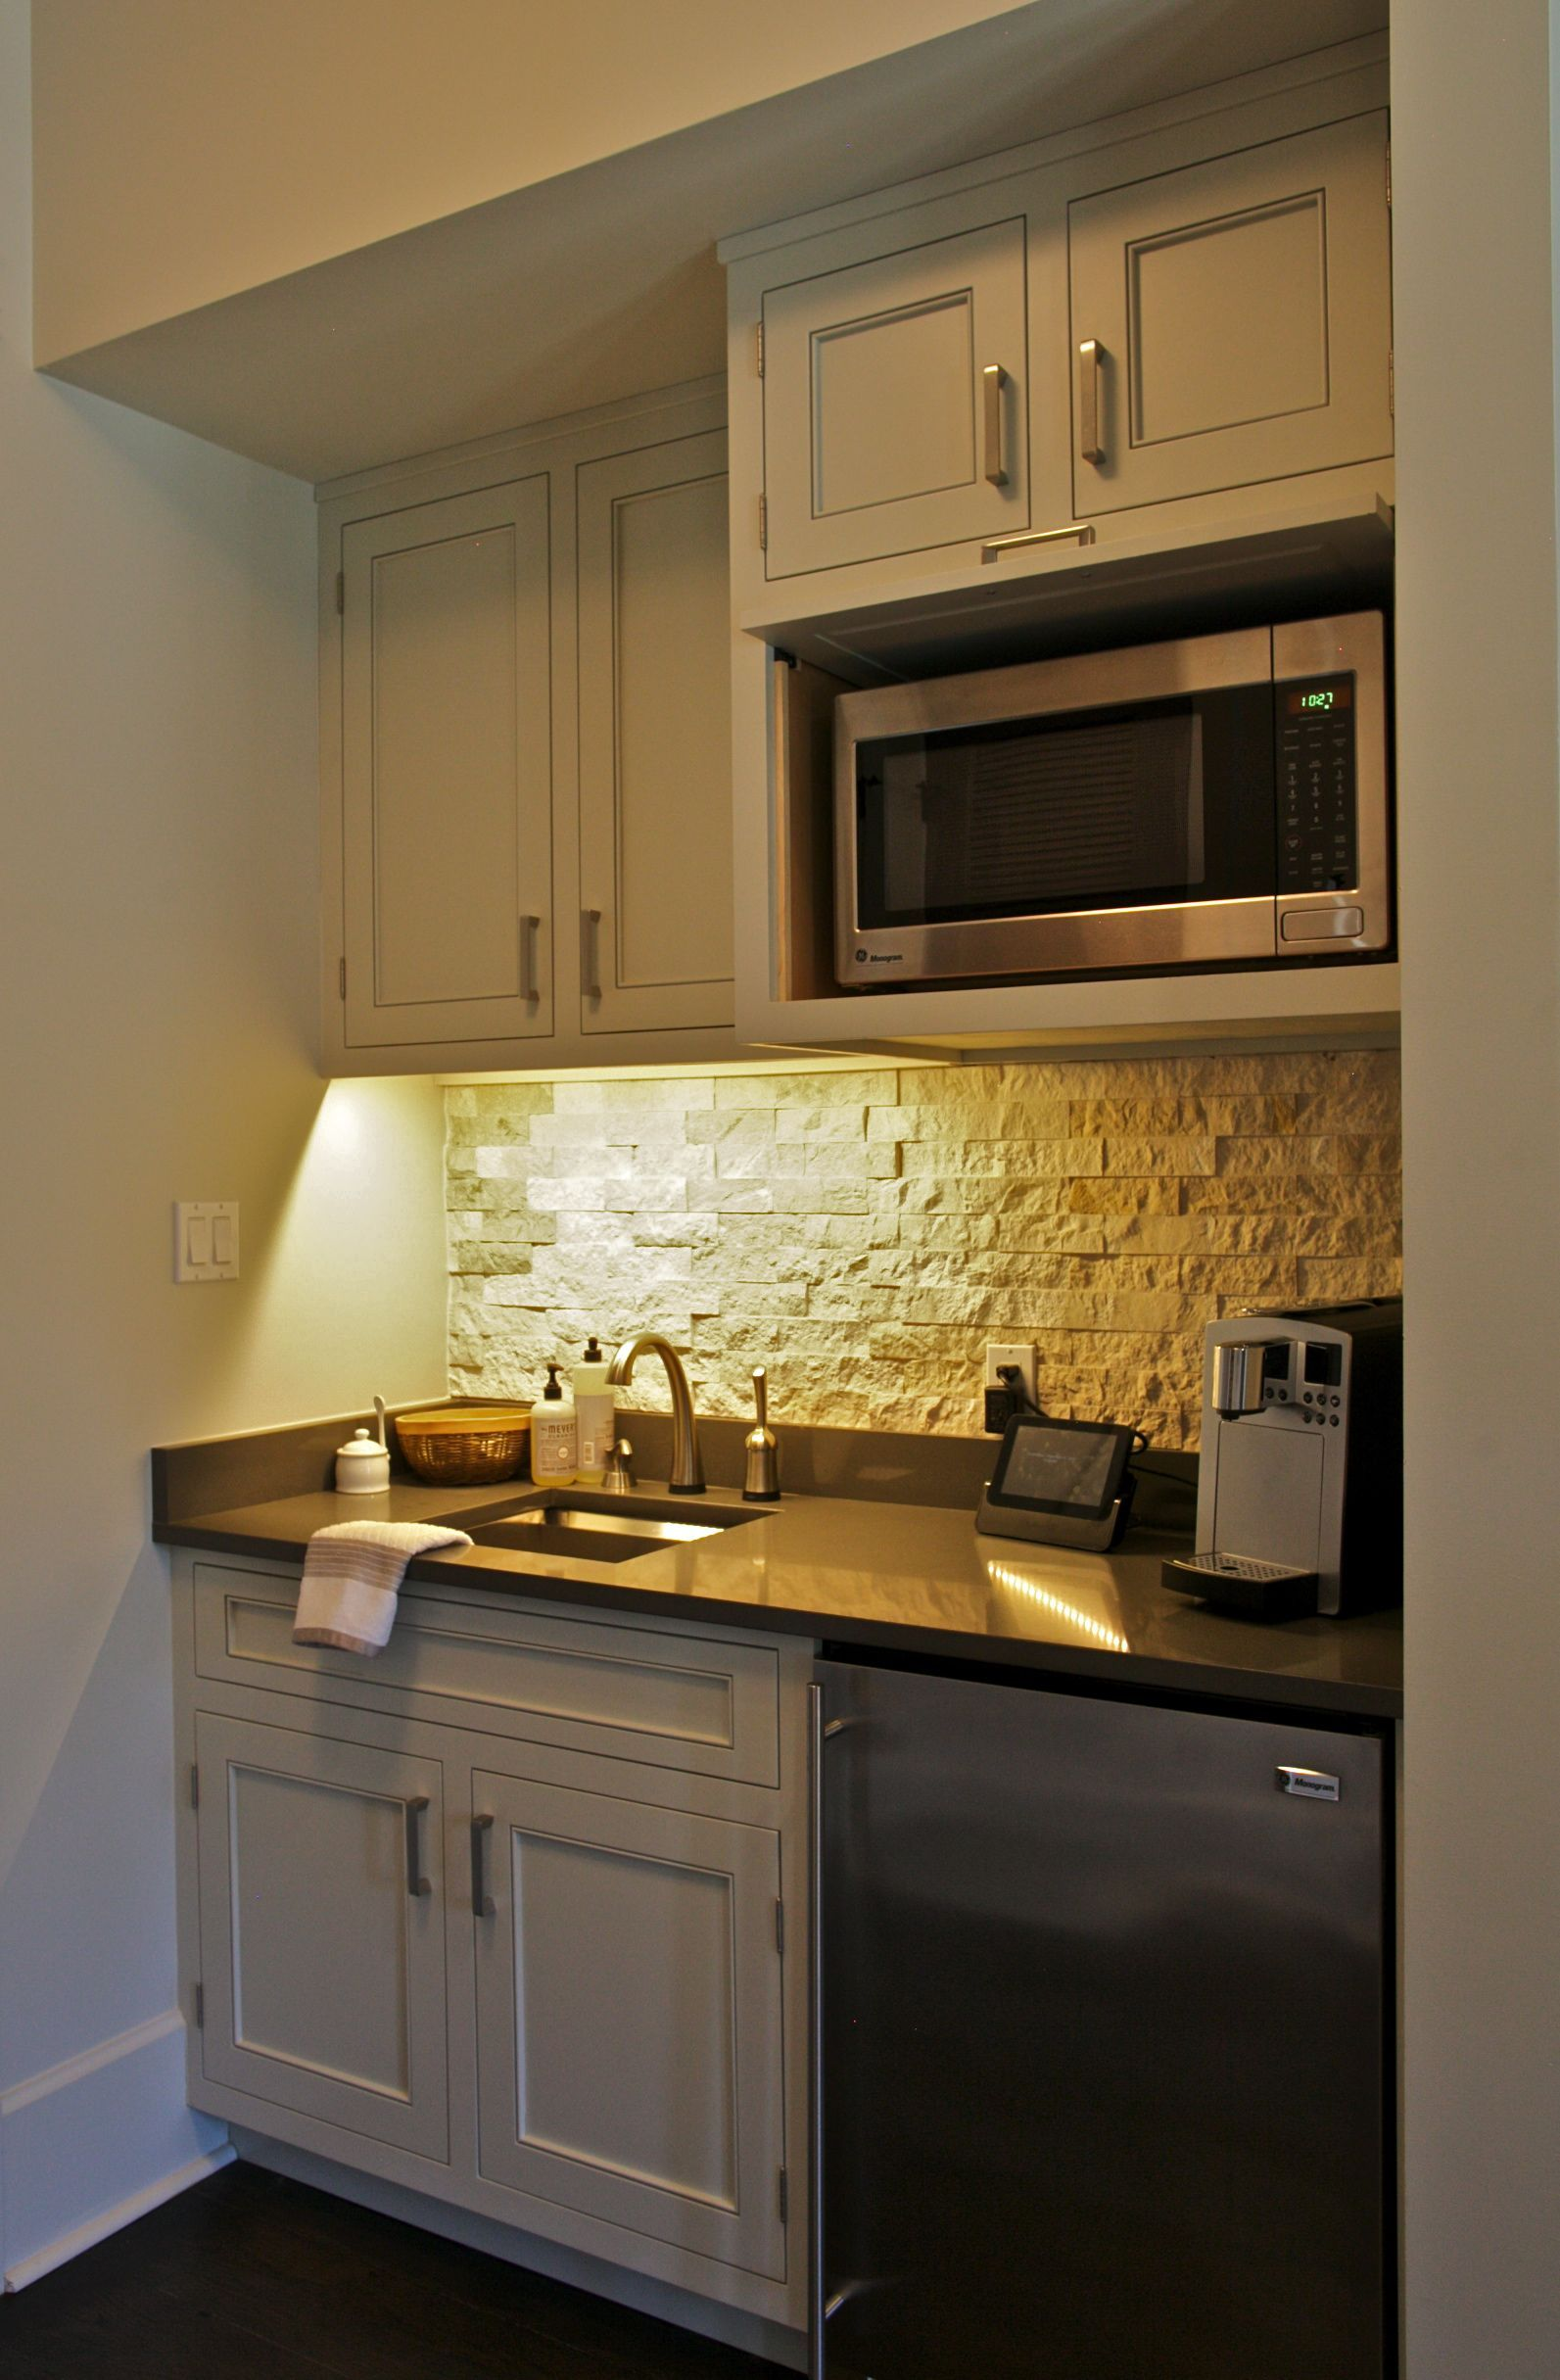 Master bedroom entertainment centers  This coffee barkitchenette sits in a Master Bedroom for early